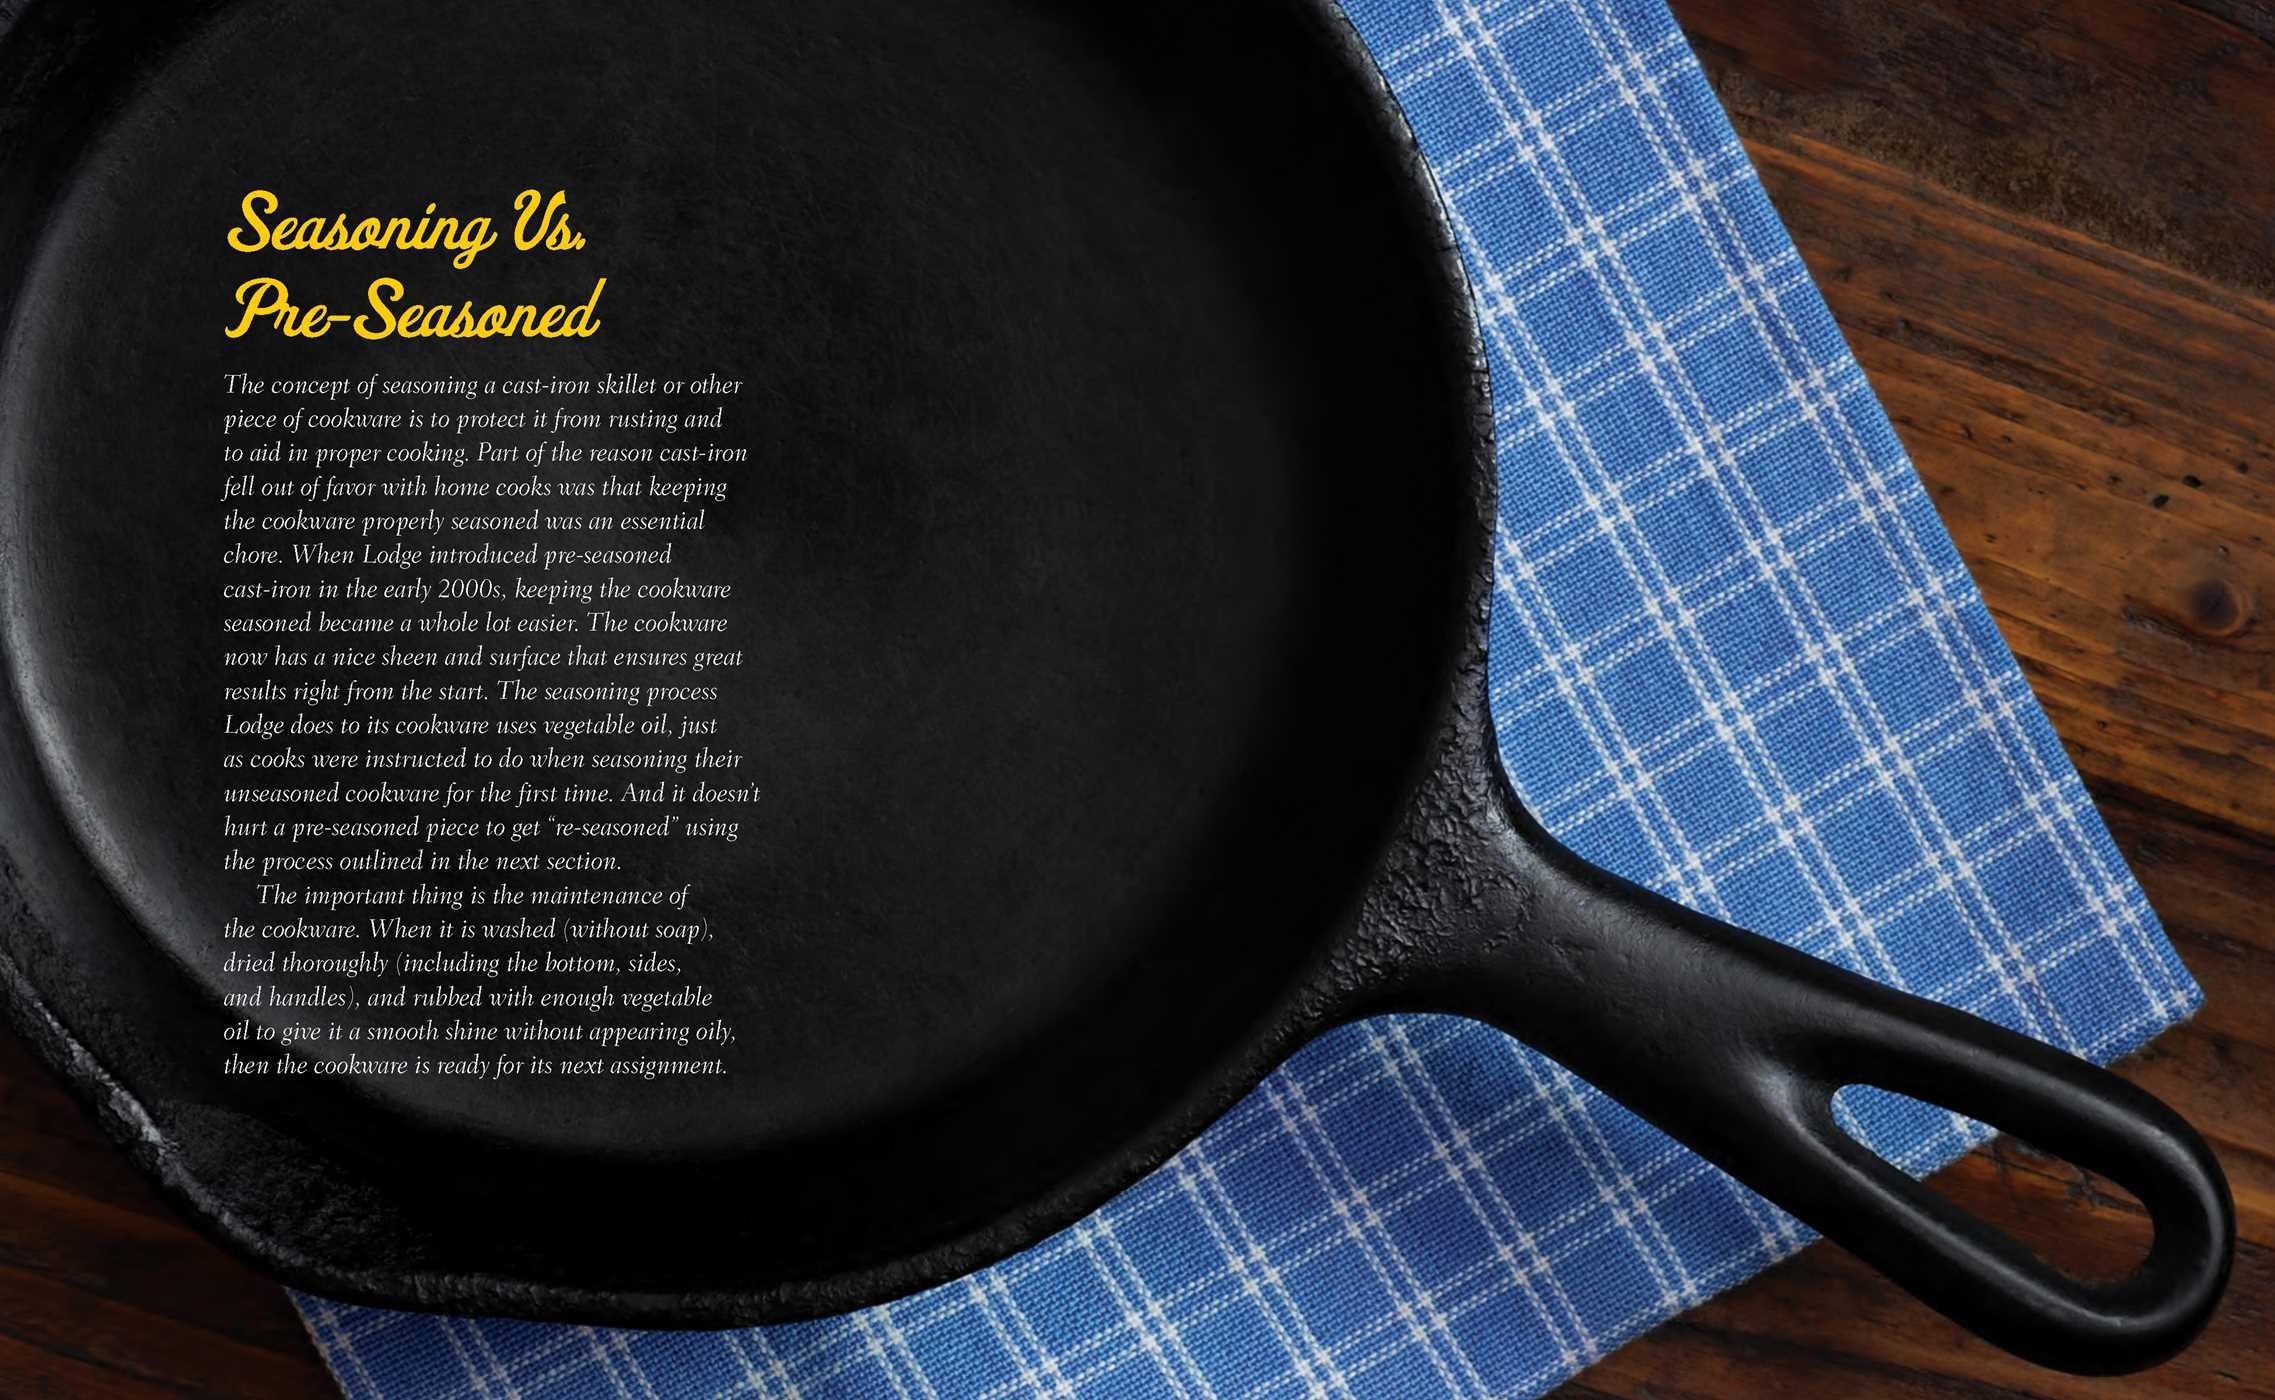 The cast iron cookware the care and keeping handbook 9781604337327.in03